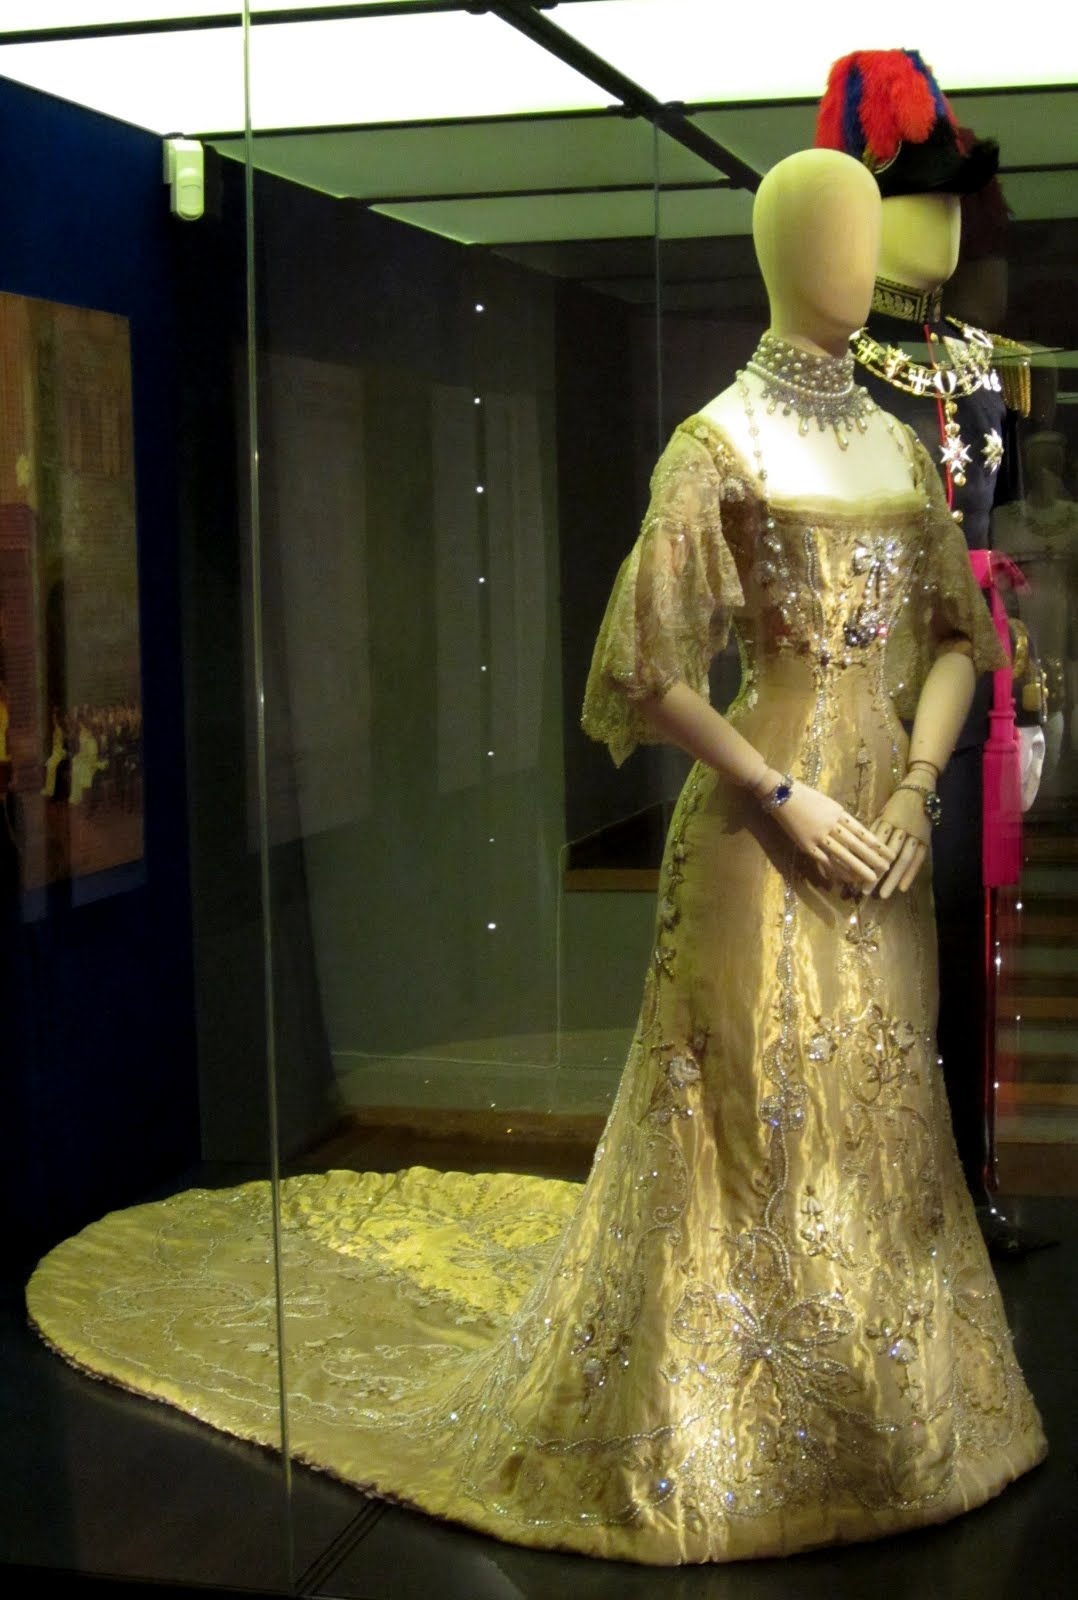 Trond Norn Isaksen: What to see: Queen Mauds coronation gown